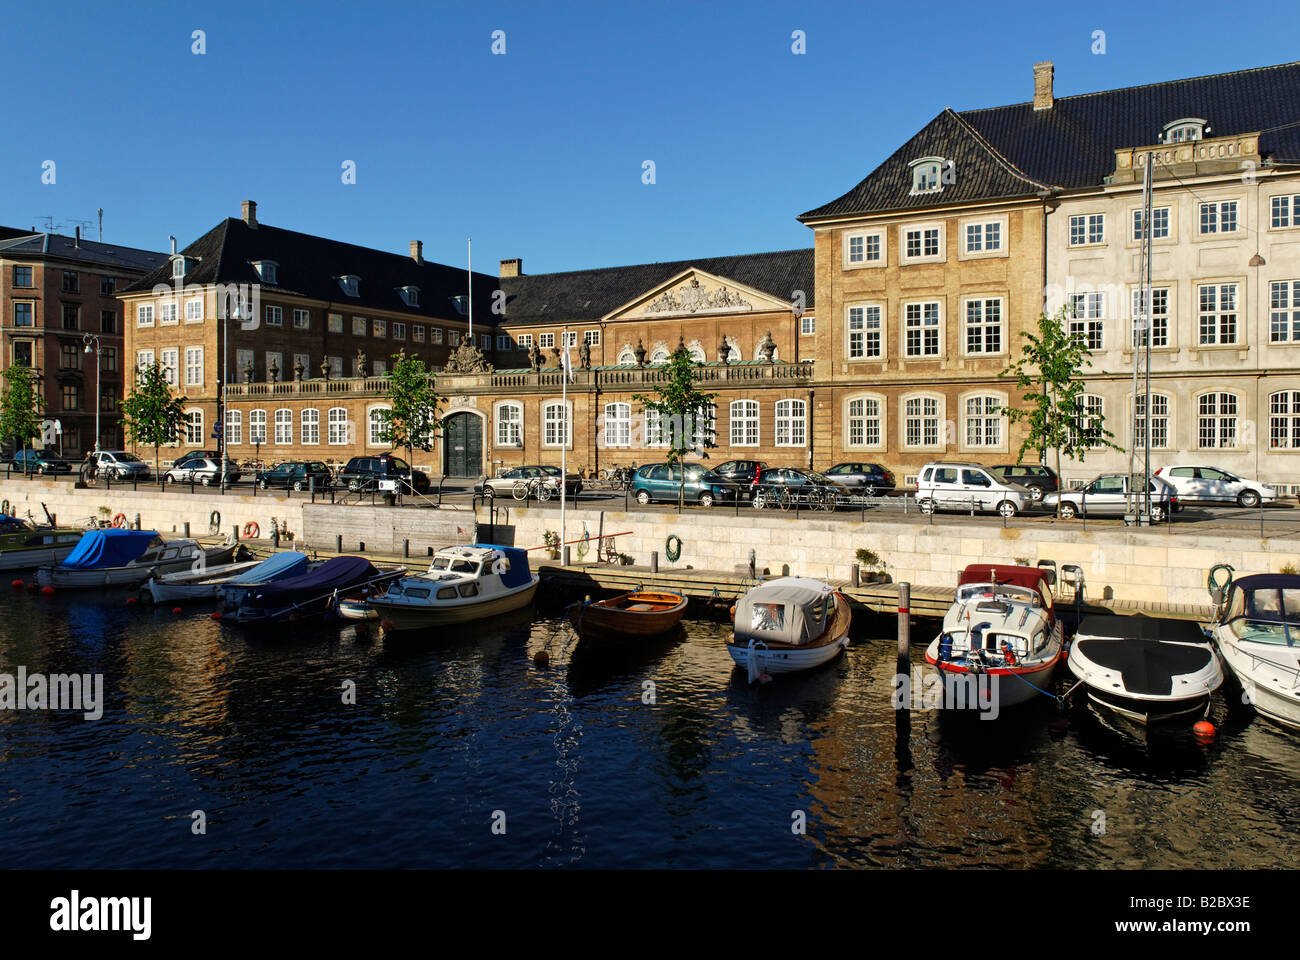 Boats in the Frederiksholm Canal with the National Museum, Copenhagen, Denmark, Scandinavia, Europe - Stock Image